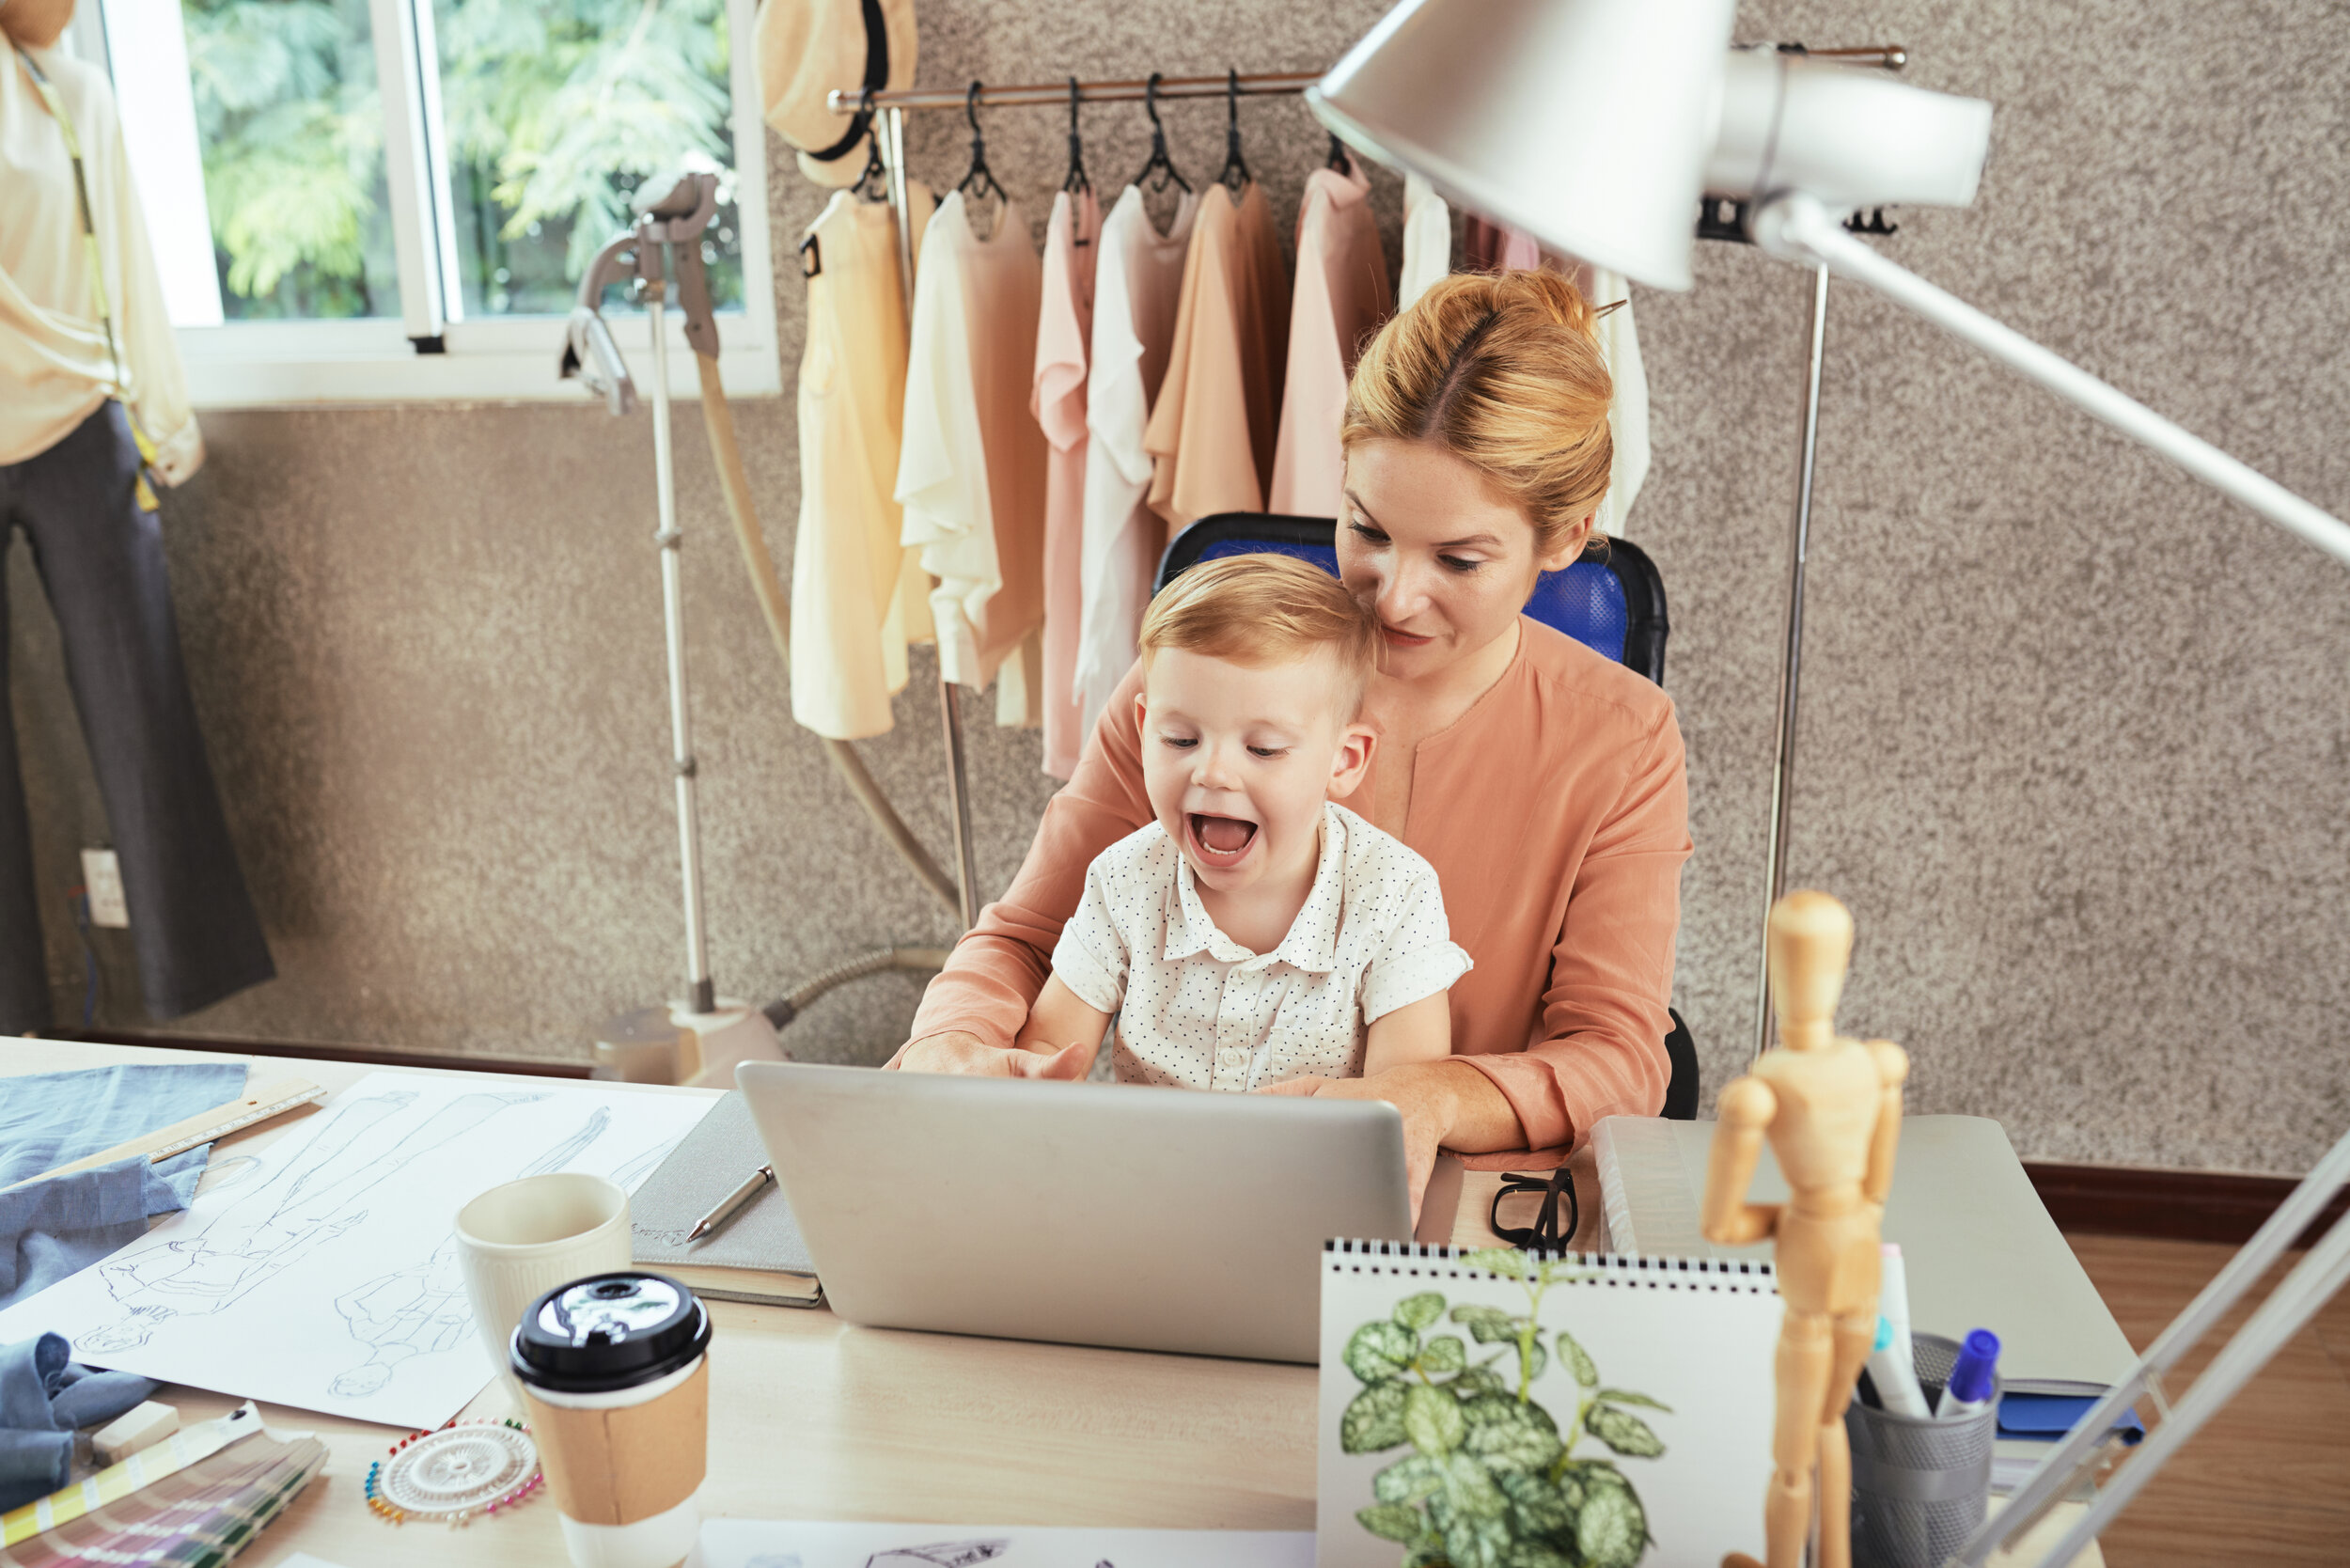 3 Strategies for Better Work-Life Balance - By Laura  McMullan